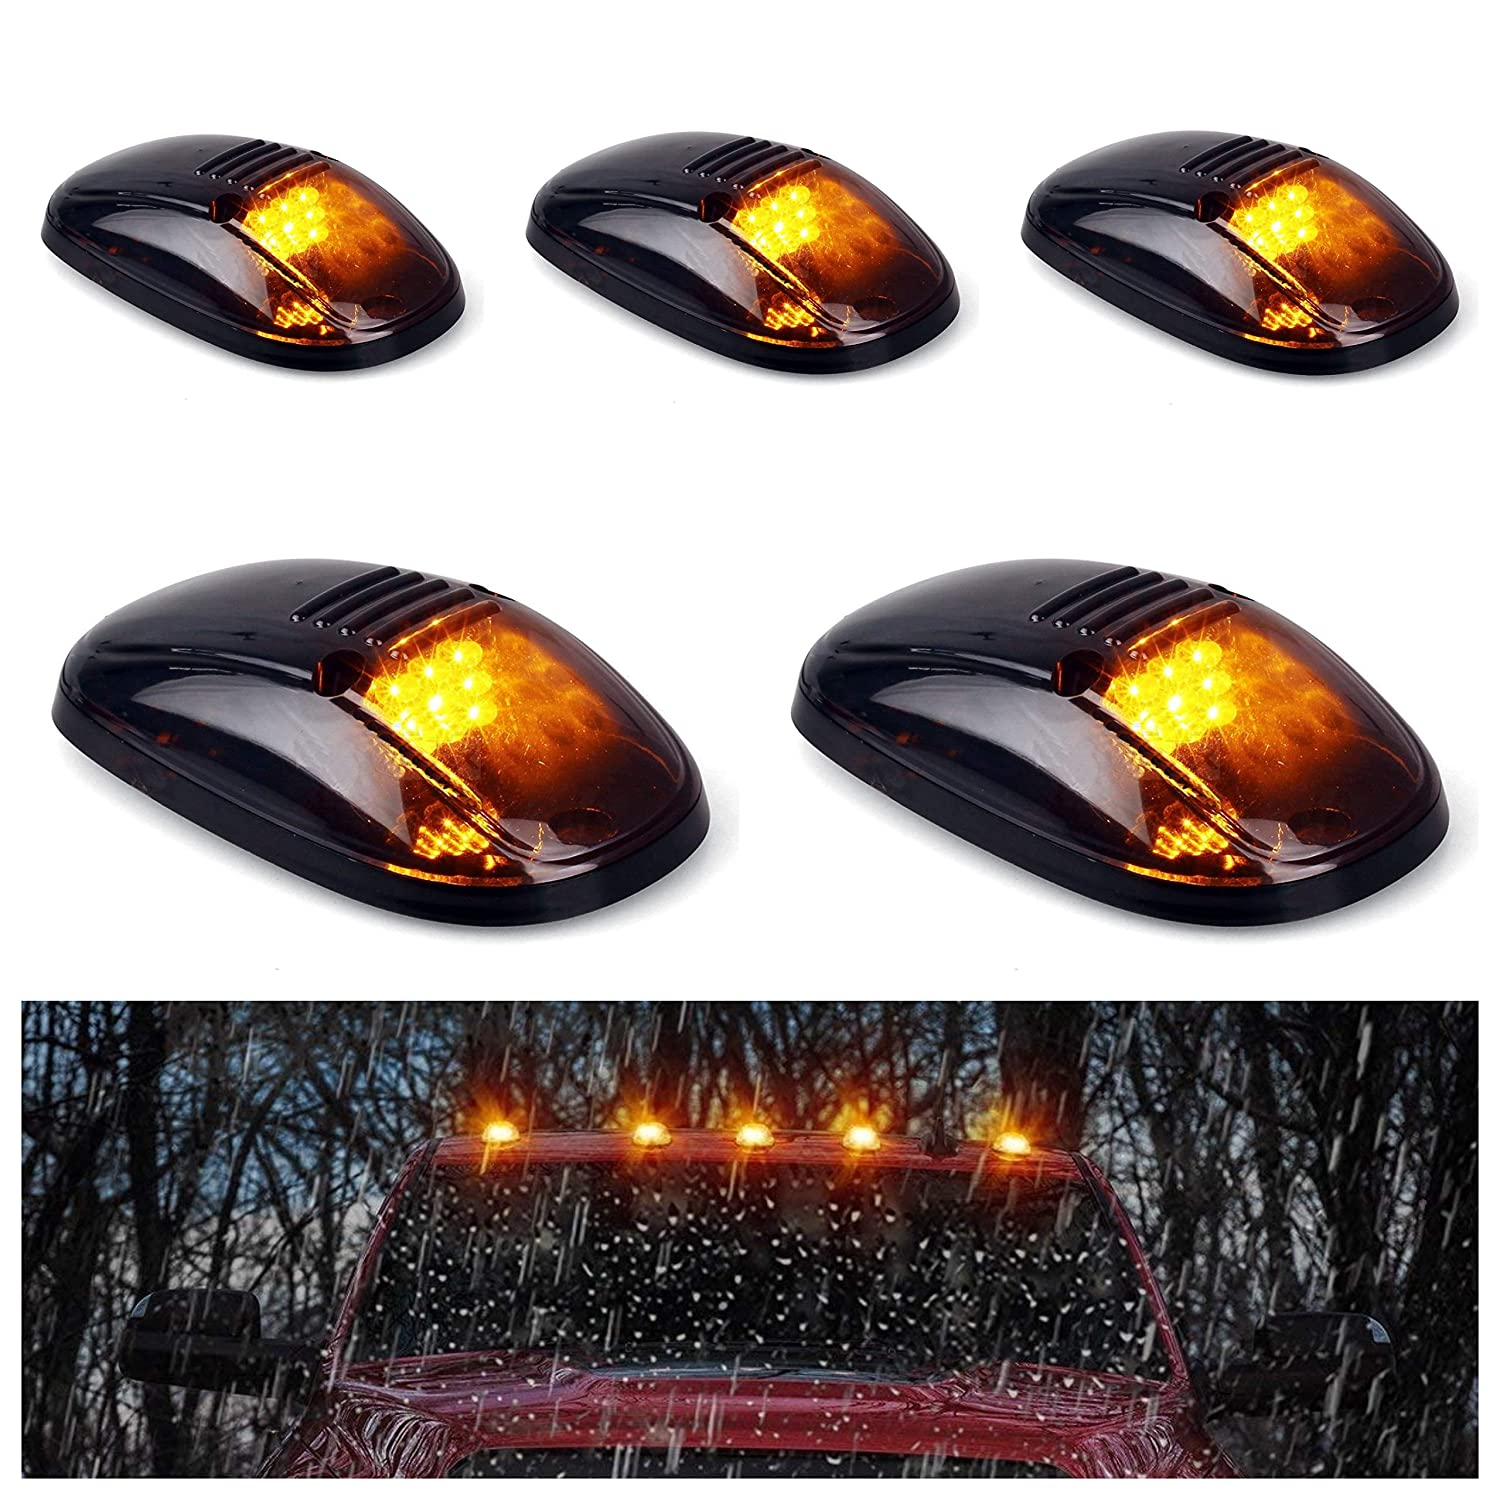 5pcs Amber Lens Amber LED Cab Roof Marker Lights, KOMAS Roof Top Lamp Clearance Running Light Replacement + T10 Set for Truck SUV 1999-2002 Dodge Ram 1500 2500 3500 4500 (Amber Lens& Amber LED) KMS CAB LIGHTS101